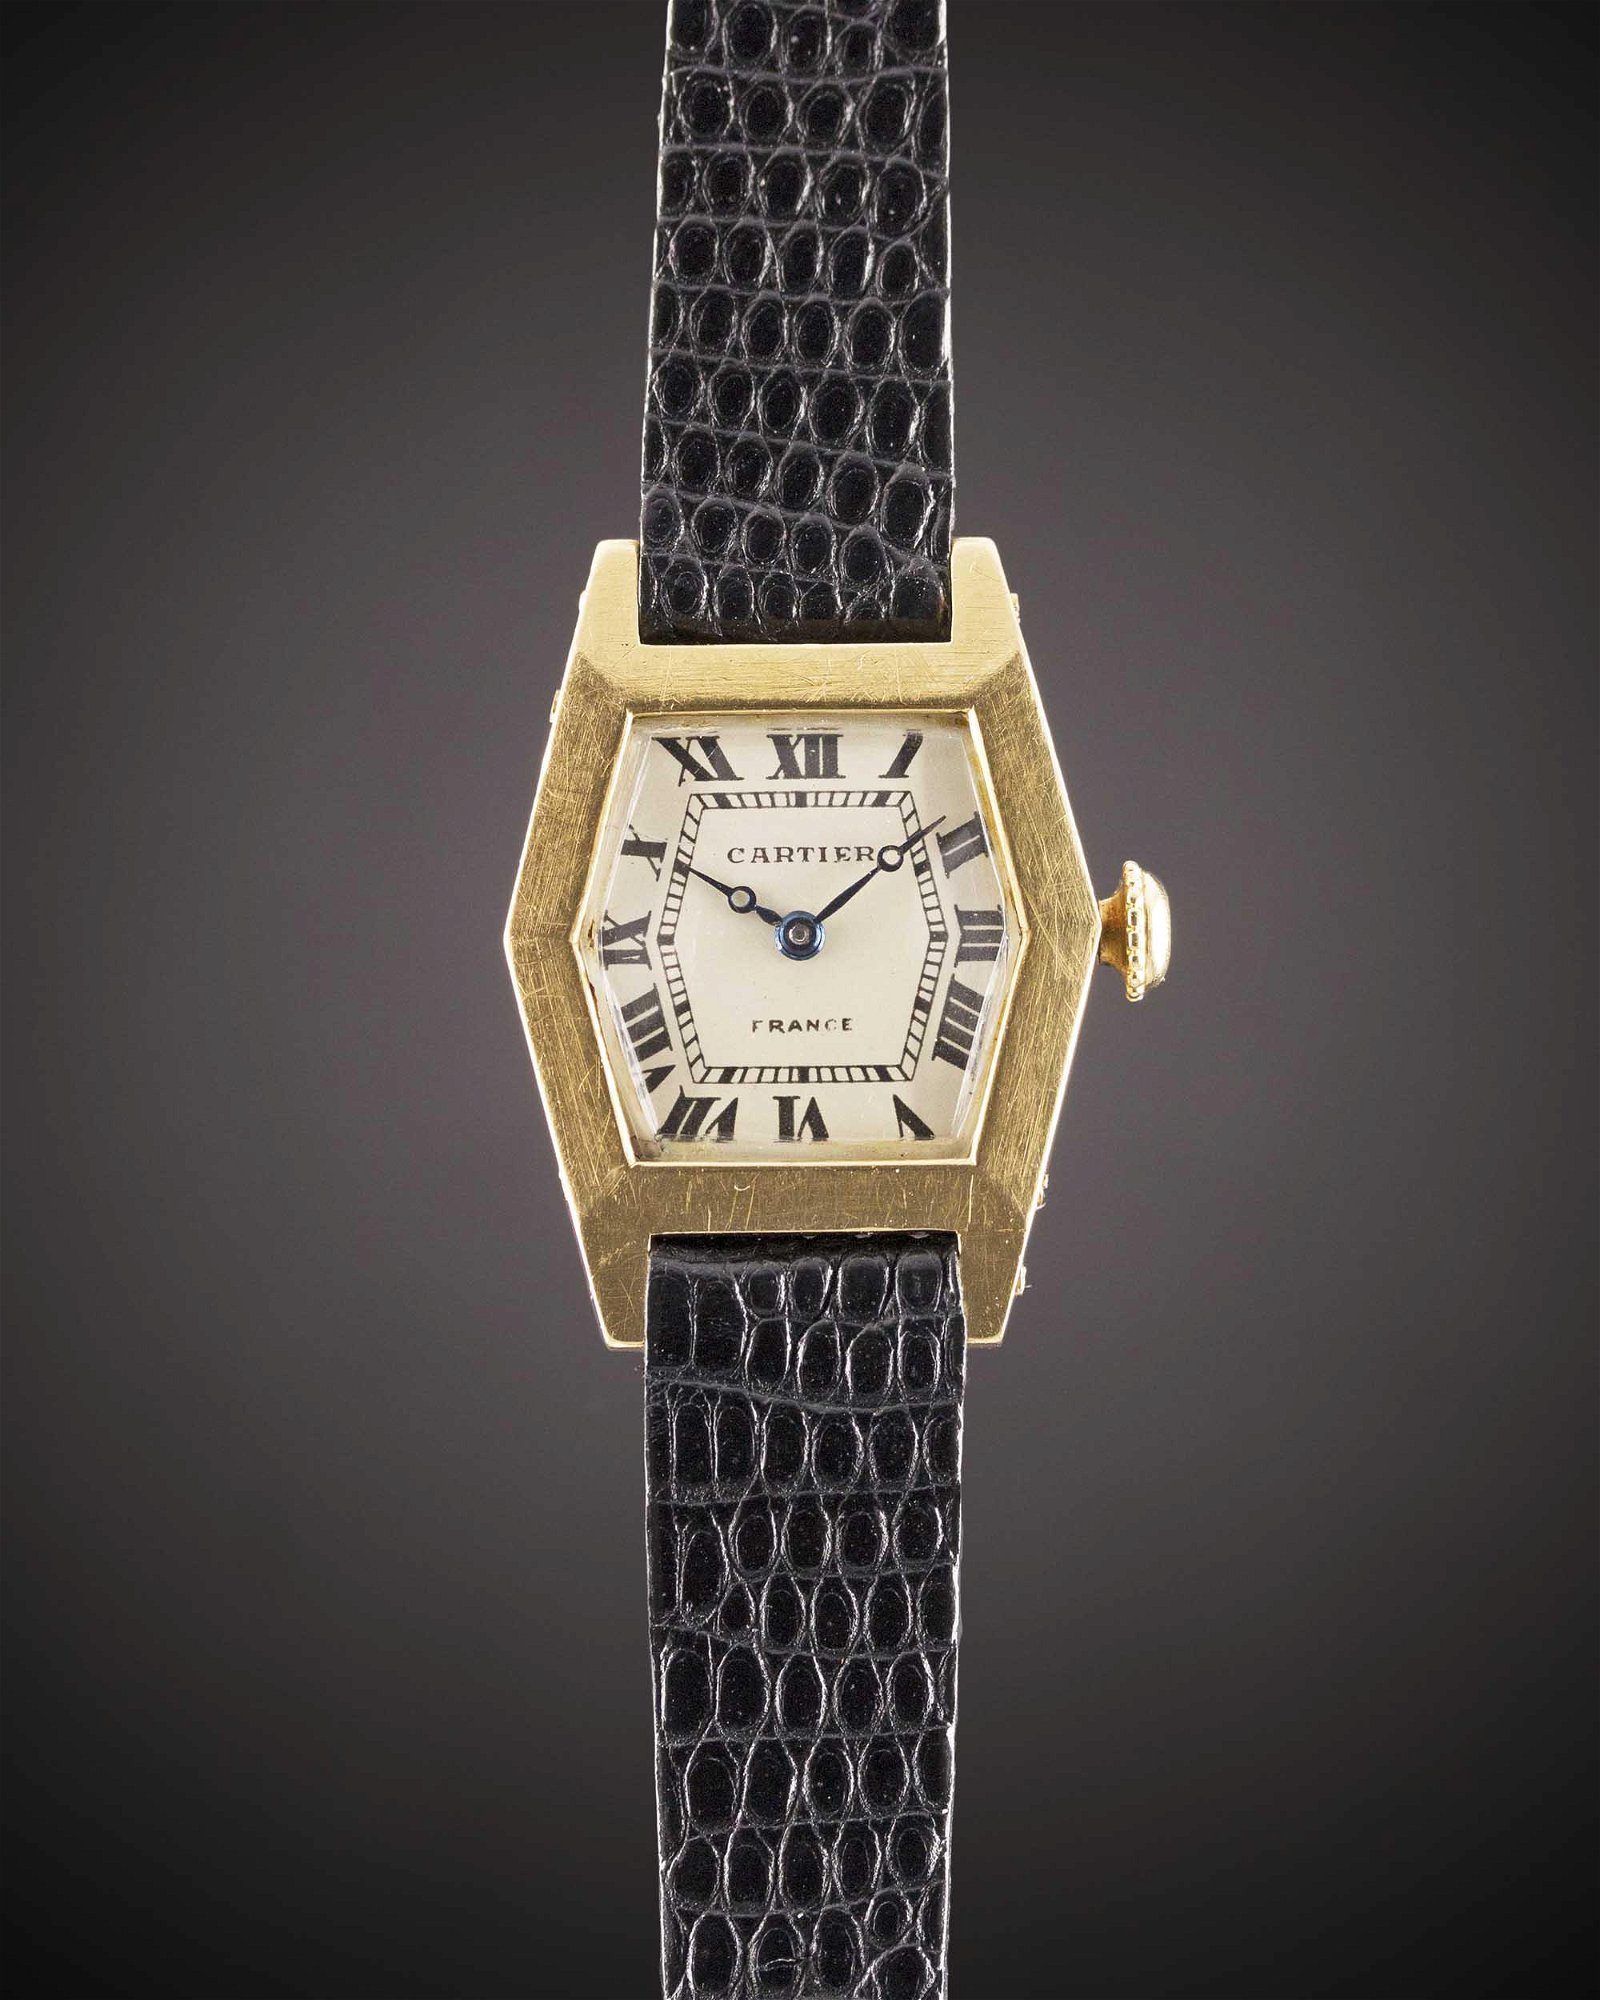 A RARE LADIES 18K SOLID GOLD CARTIER FRANCE WRIST WATCH